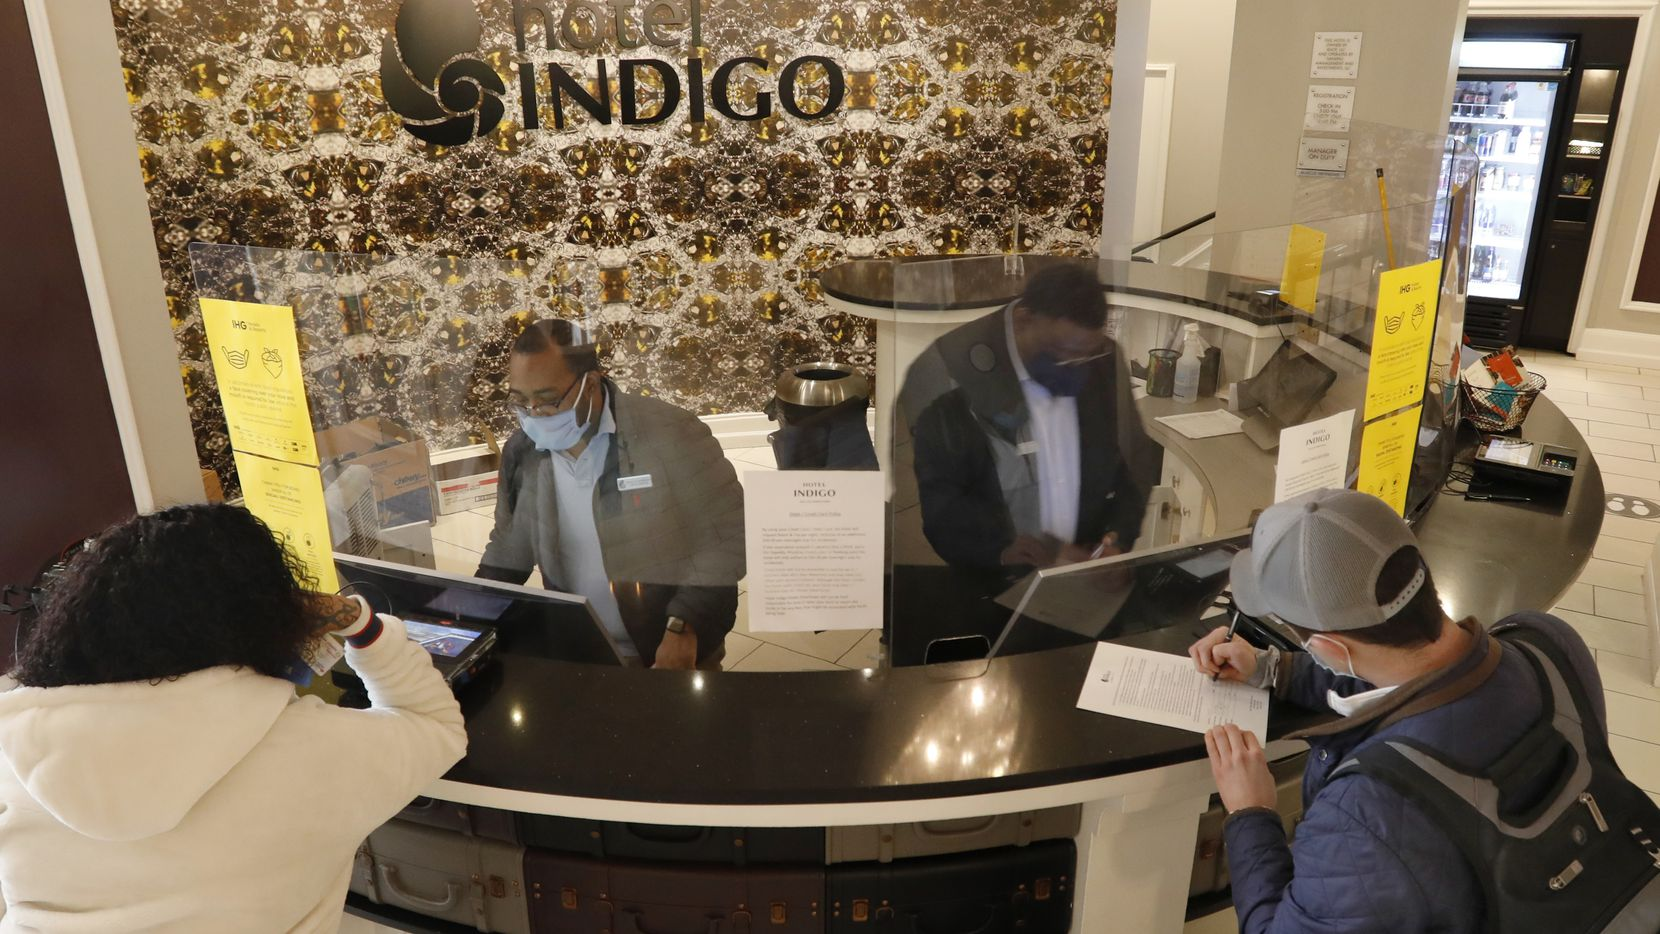 General Manager Marcus Hennigan, back left, and Brian Smith, back right, check in guests at Hotel Indigo in Dallas last month. From 2019 to 2029, the number of hotel clerks in the U.S. could decline by 22%, in large part because of the pandemic's lasting effects, according to a recent report by economists at the U.S. Bureau of Labor Statistics.